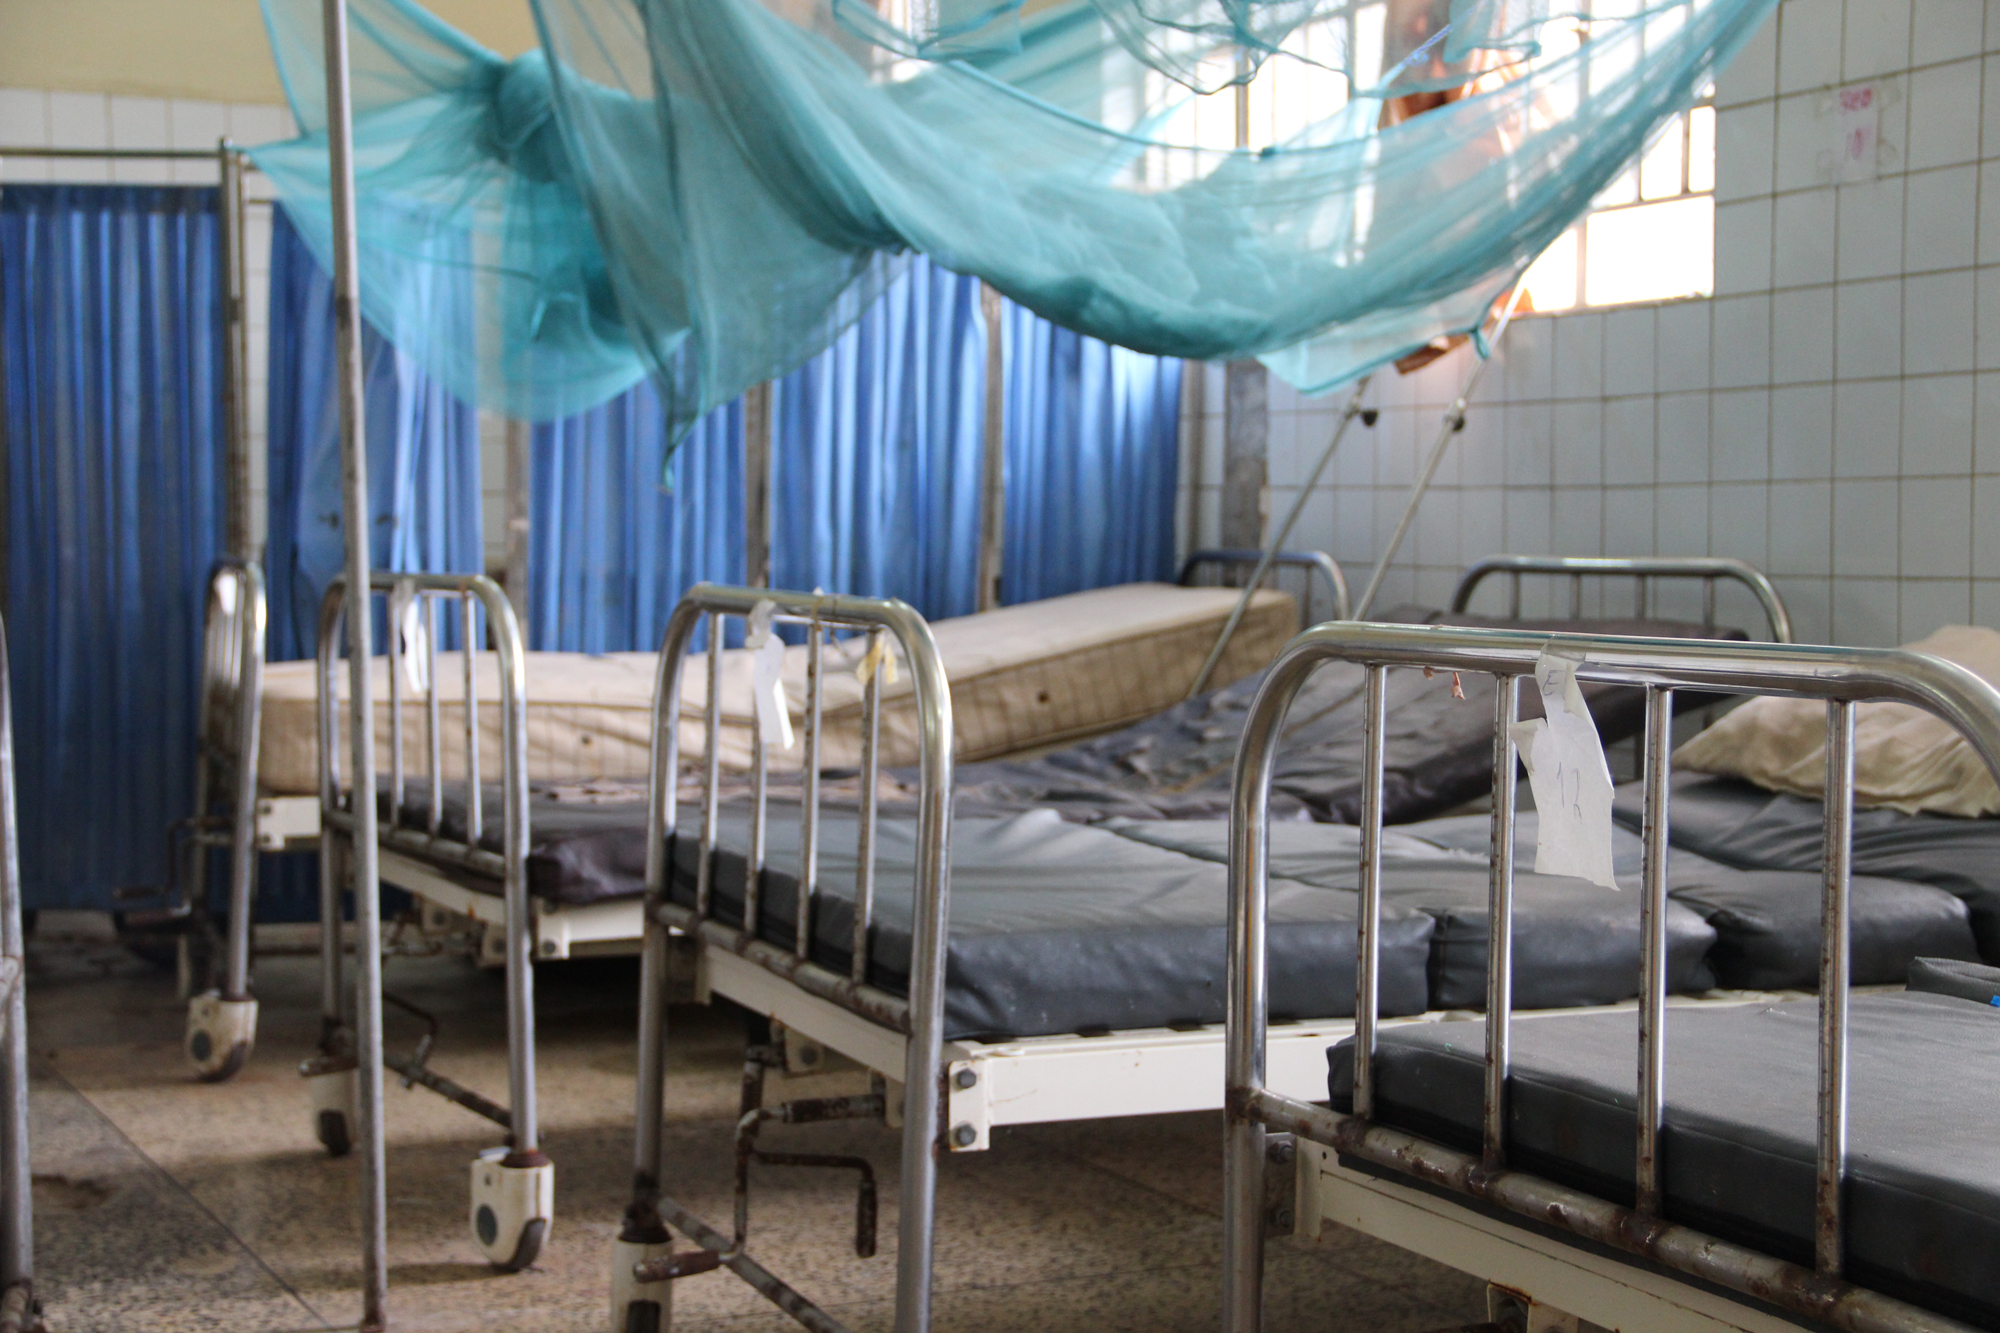 Infections have rapidly fallen after aid groups and government ramped up treatment and prevention. In August, President Ernest Bai Koroma declared the outbreak a national emergency